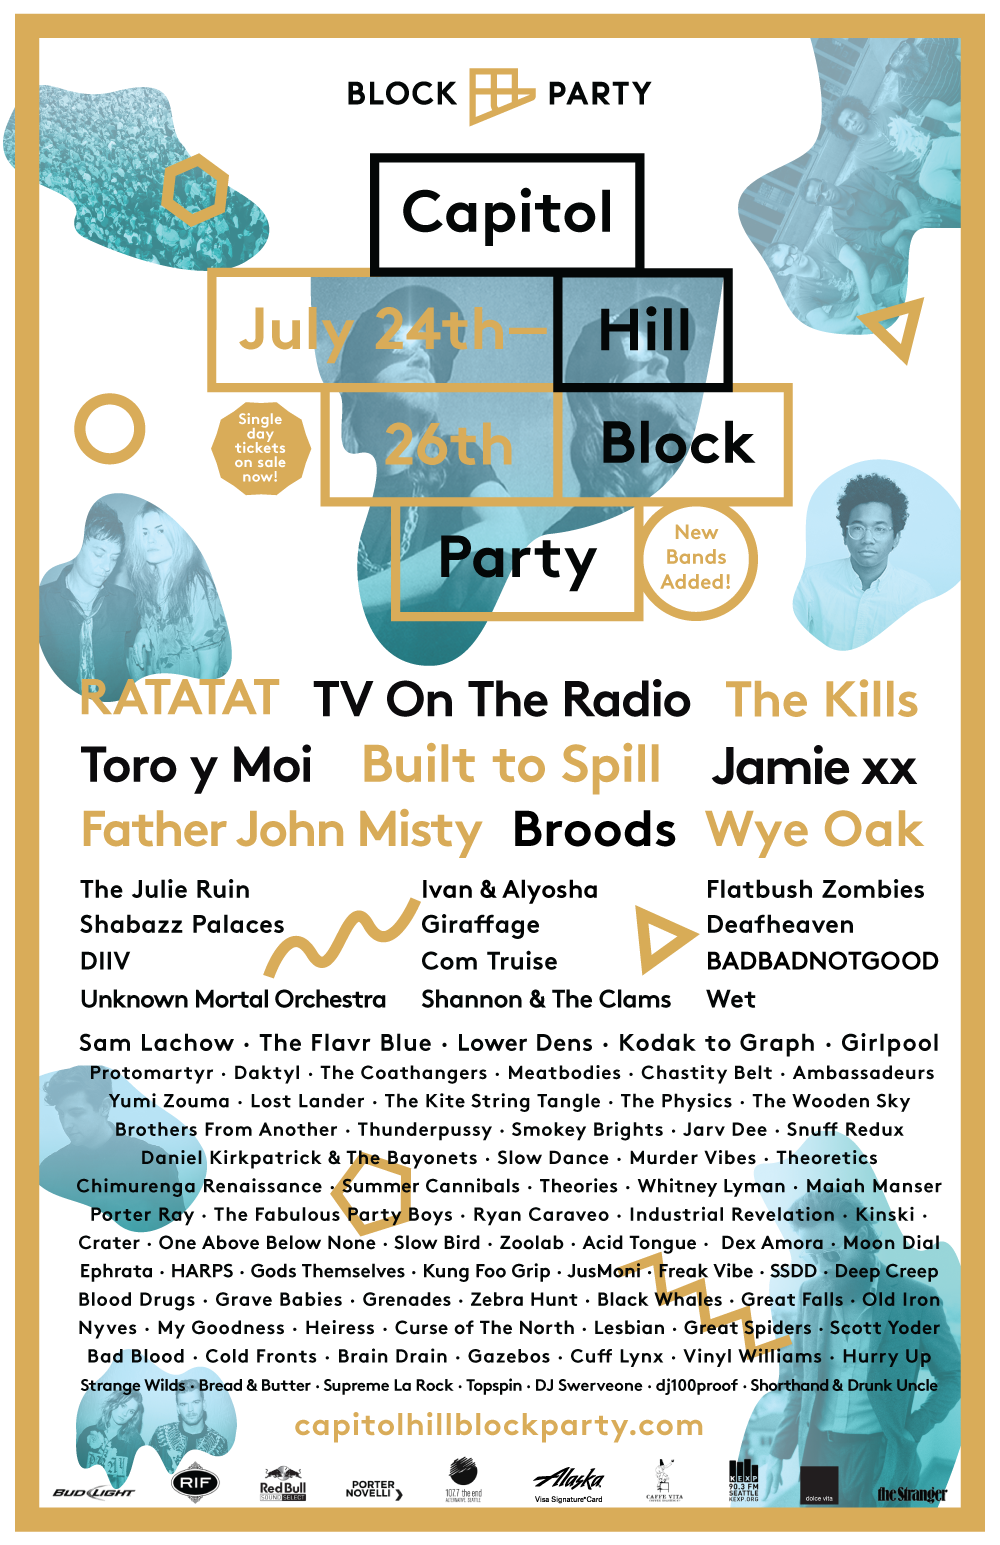 FESTIVAL PREVIEW: Seattle's Capitol Hill Block Party – The Femme's Picks